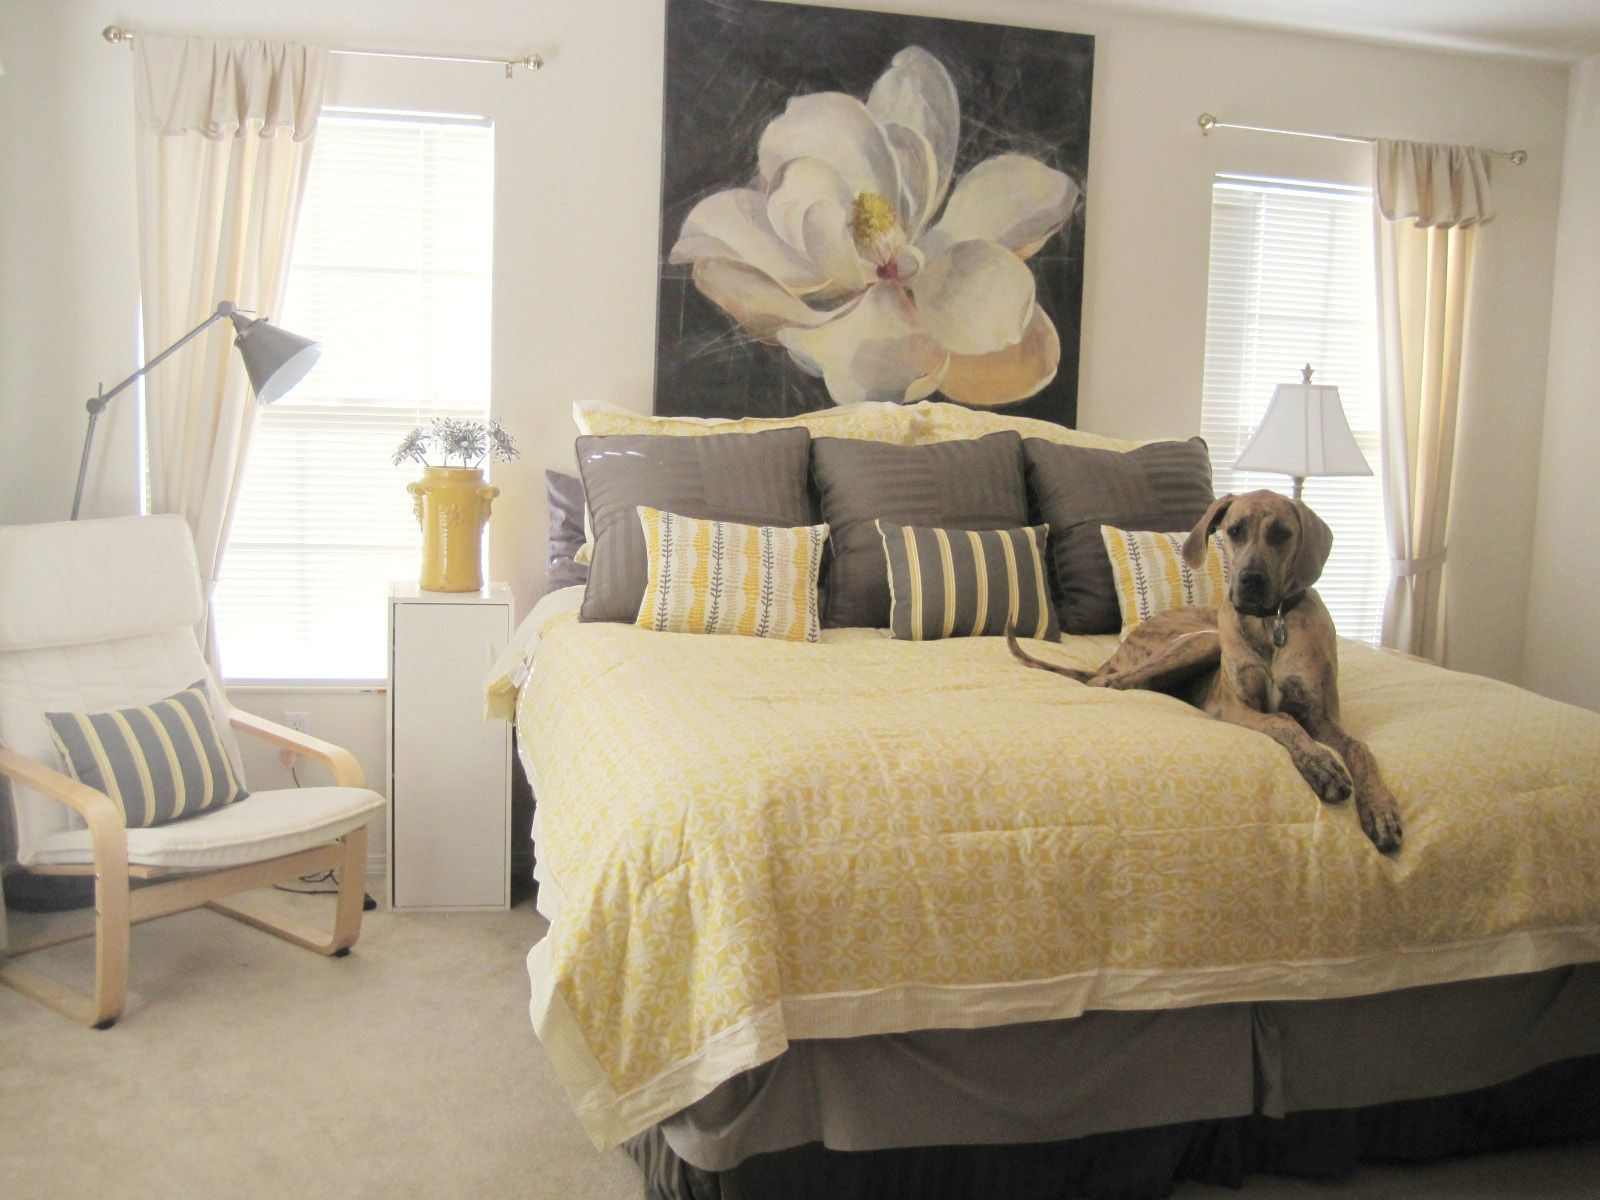 Peaceful Yellow and Gray Master Bedroom Decorating Ideas, Romantic